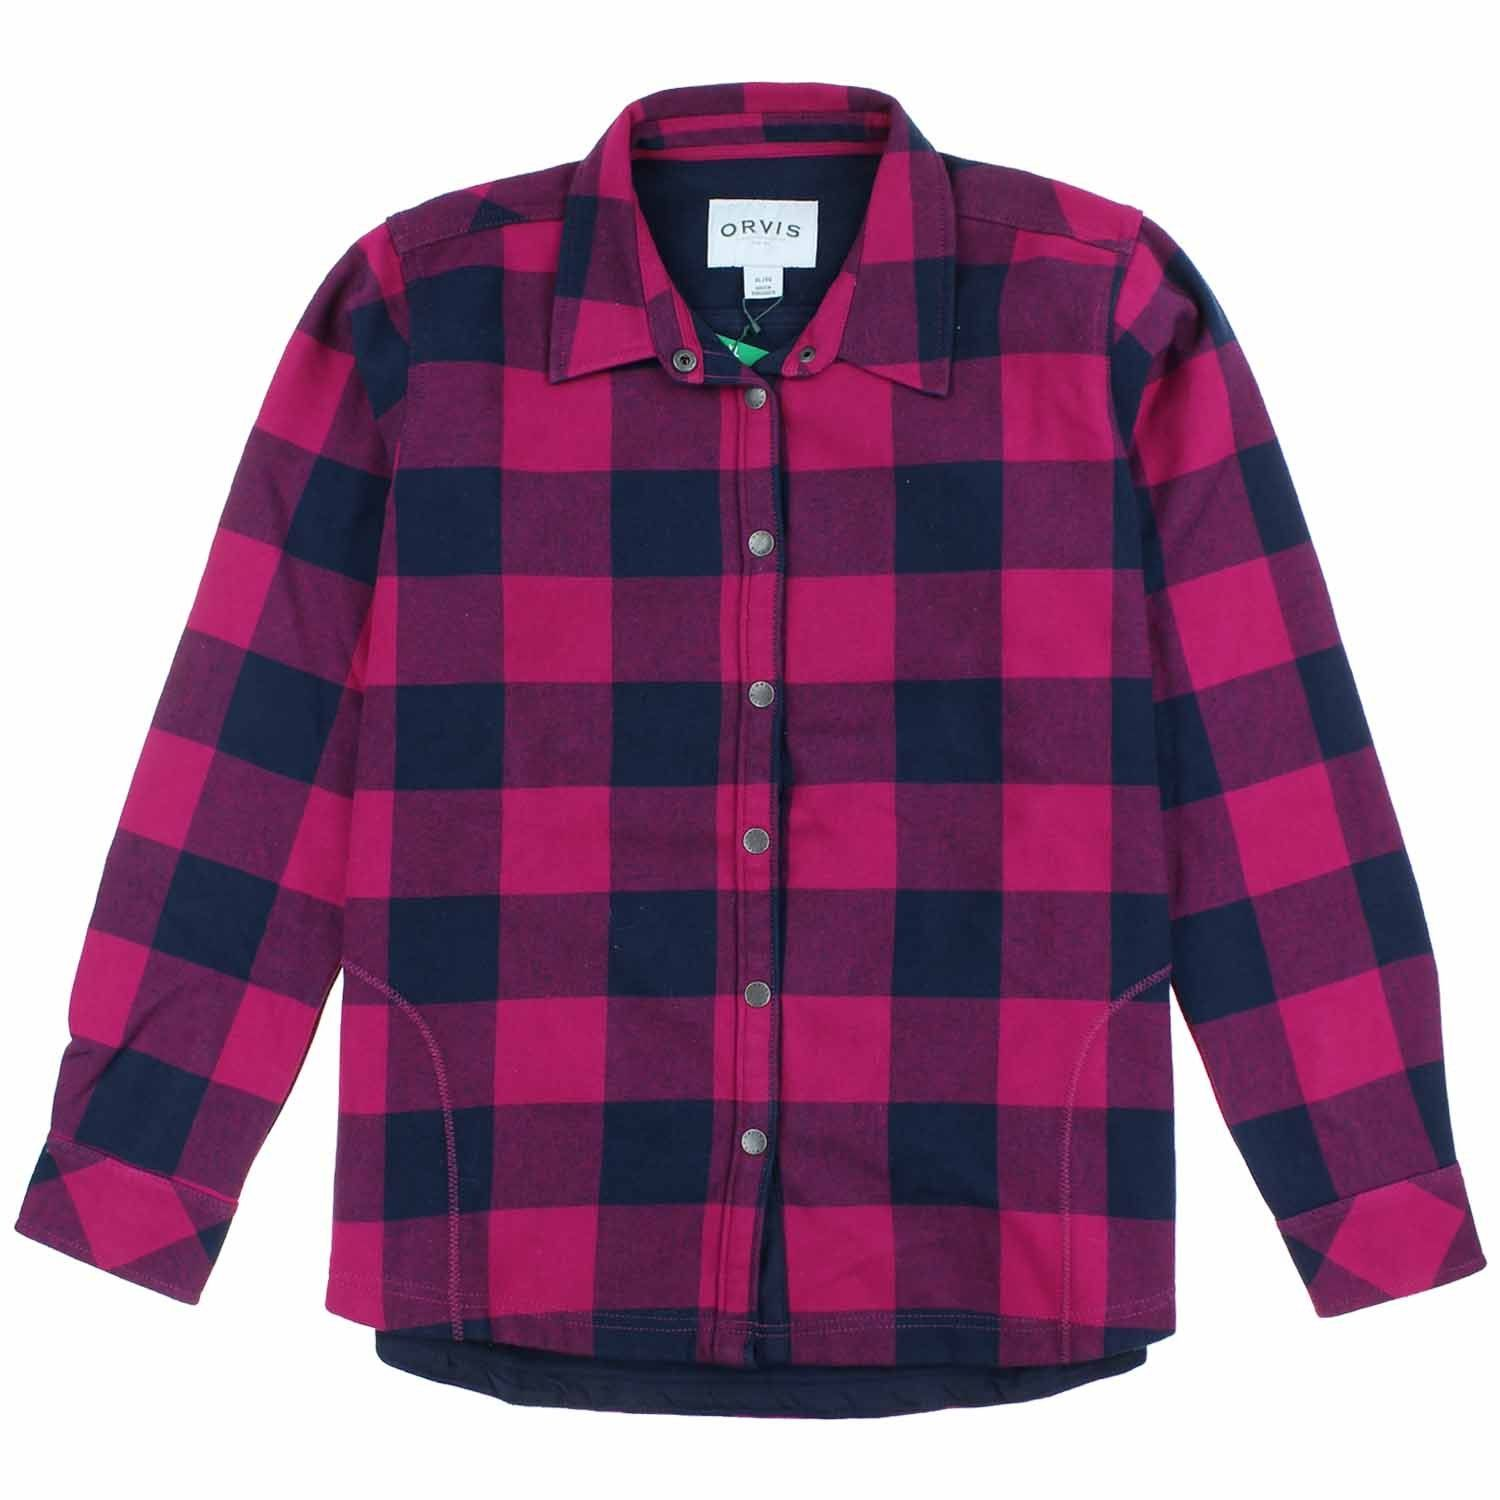 d8fac1bfe3 Orvis Womens Fleece Lined Flannel Shirt Jacket (Hot Pink Navy Buffalo  Check